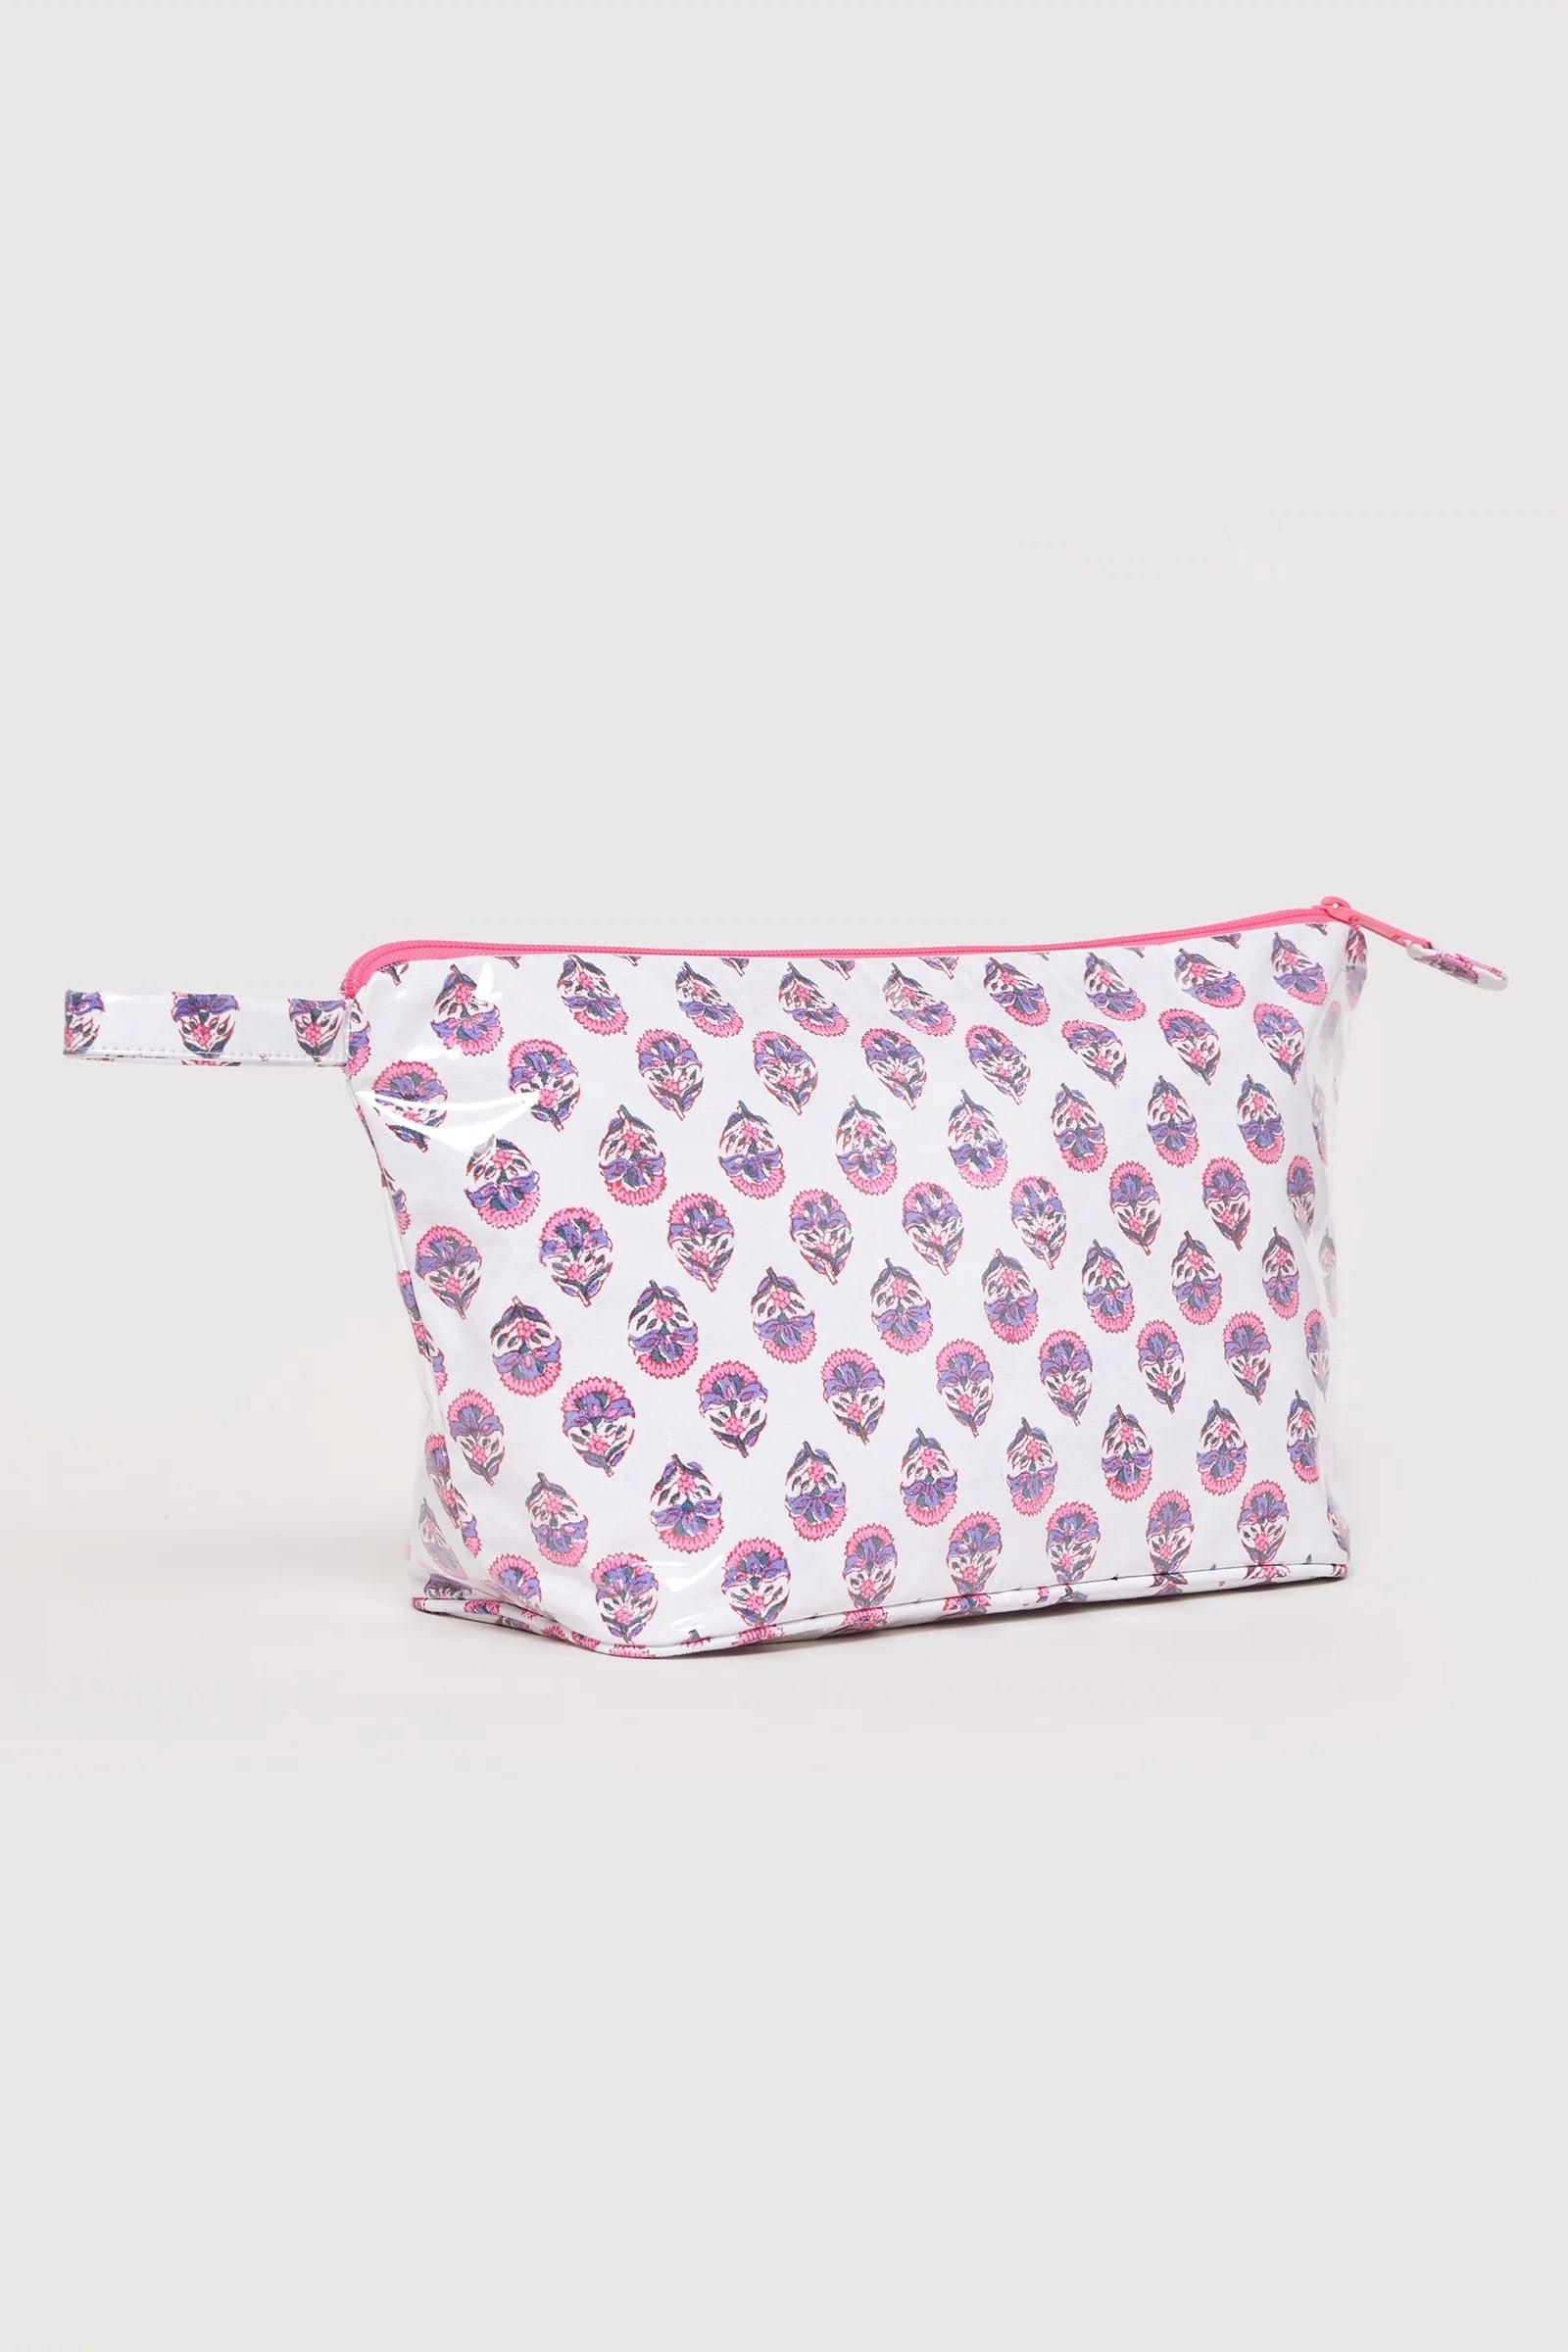 Roller Rabbit Mason Toiletry Case Don T Leave Home Without These 5 Beach Bag Must Haves Popsugar Smart Living Photo 3